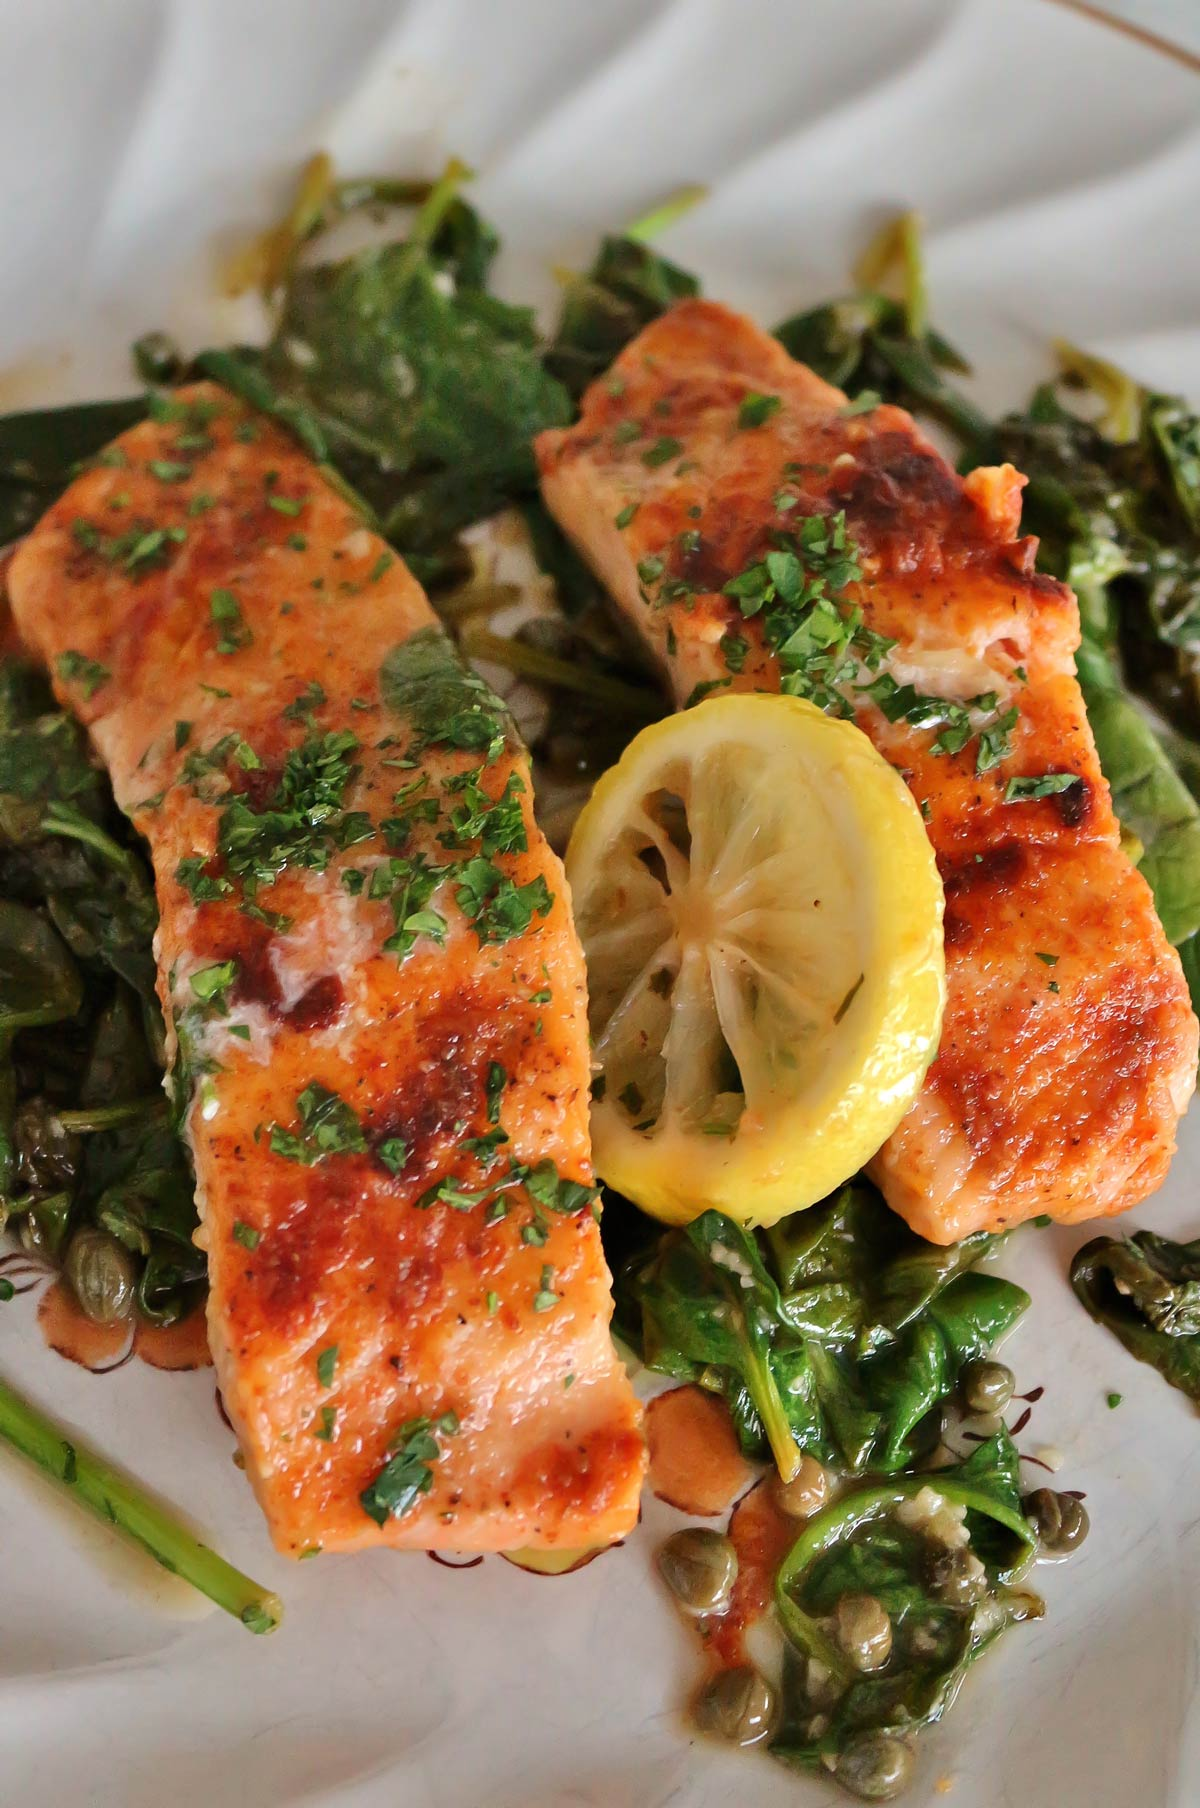 Two salmon piccata fillets with wilted baby spinach, capers and lemon slices on a rustic plate.